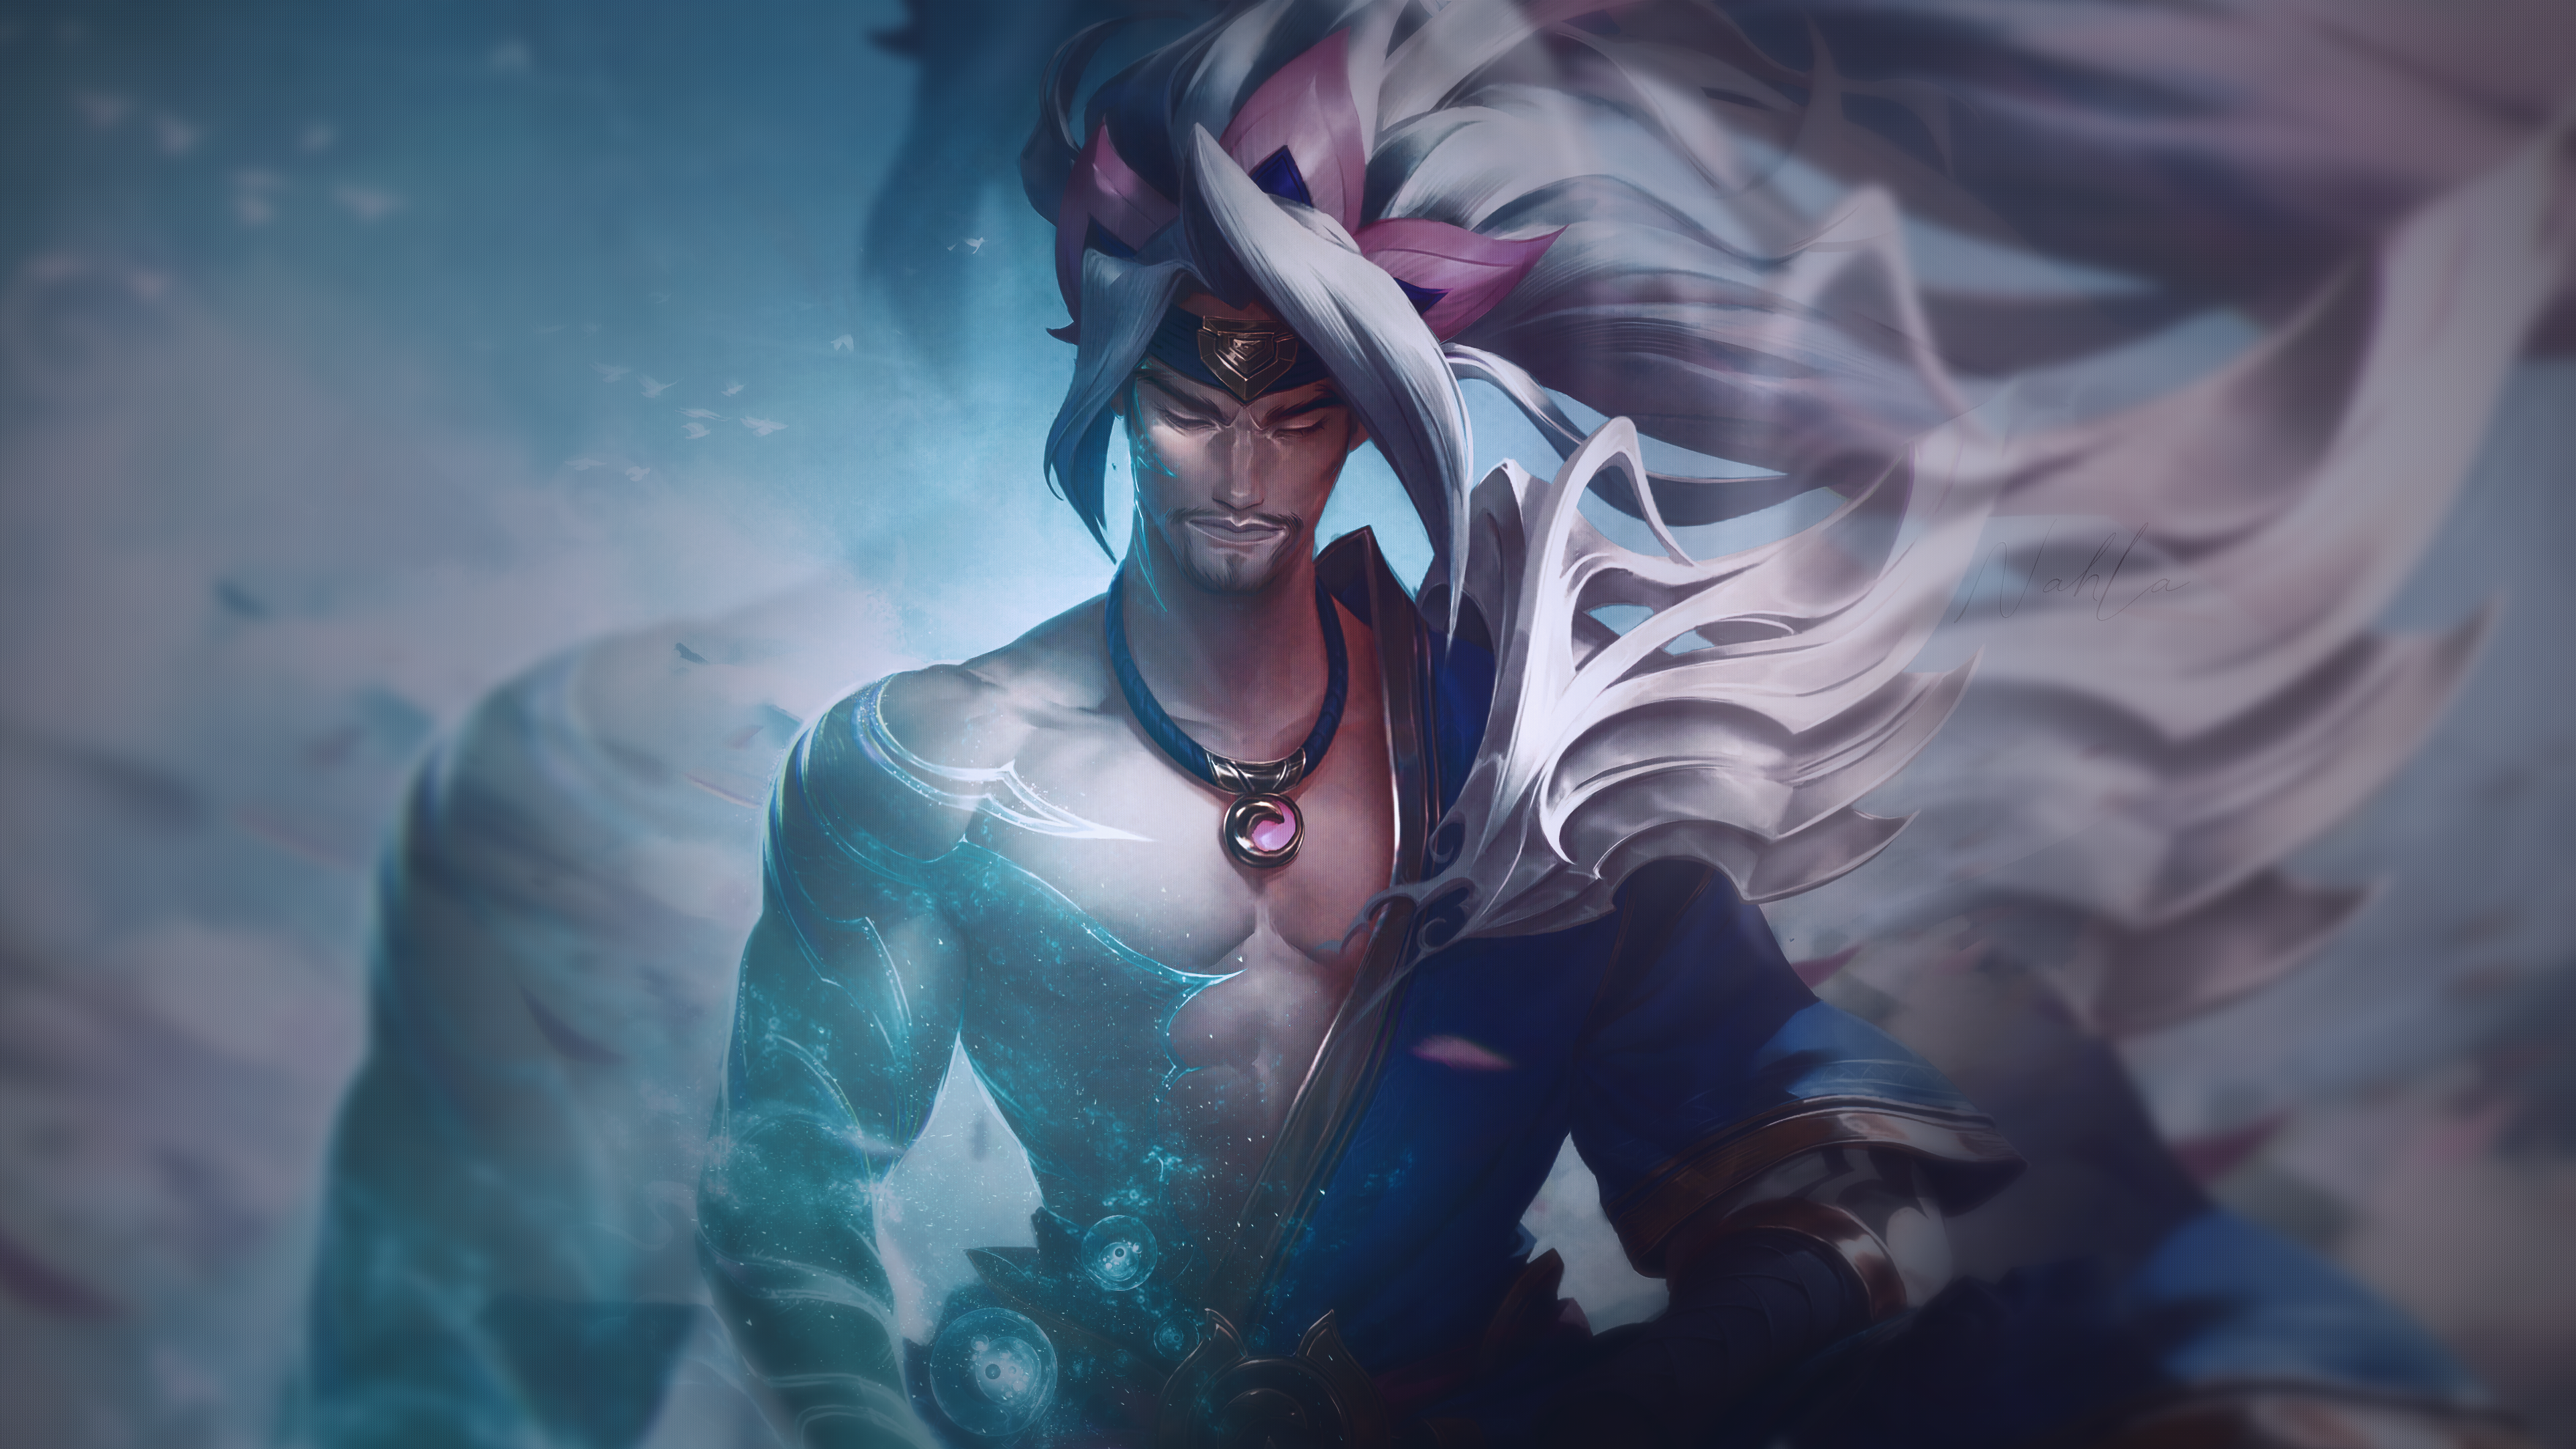 Spirit Blossom Yasuo Wallpaper 4k Ultra Hd Wallpaper Background Image 3840x2160 Id 1087029 Wallpaper Abyss